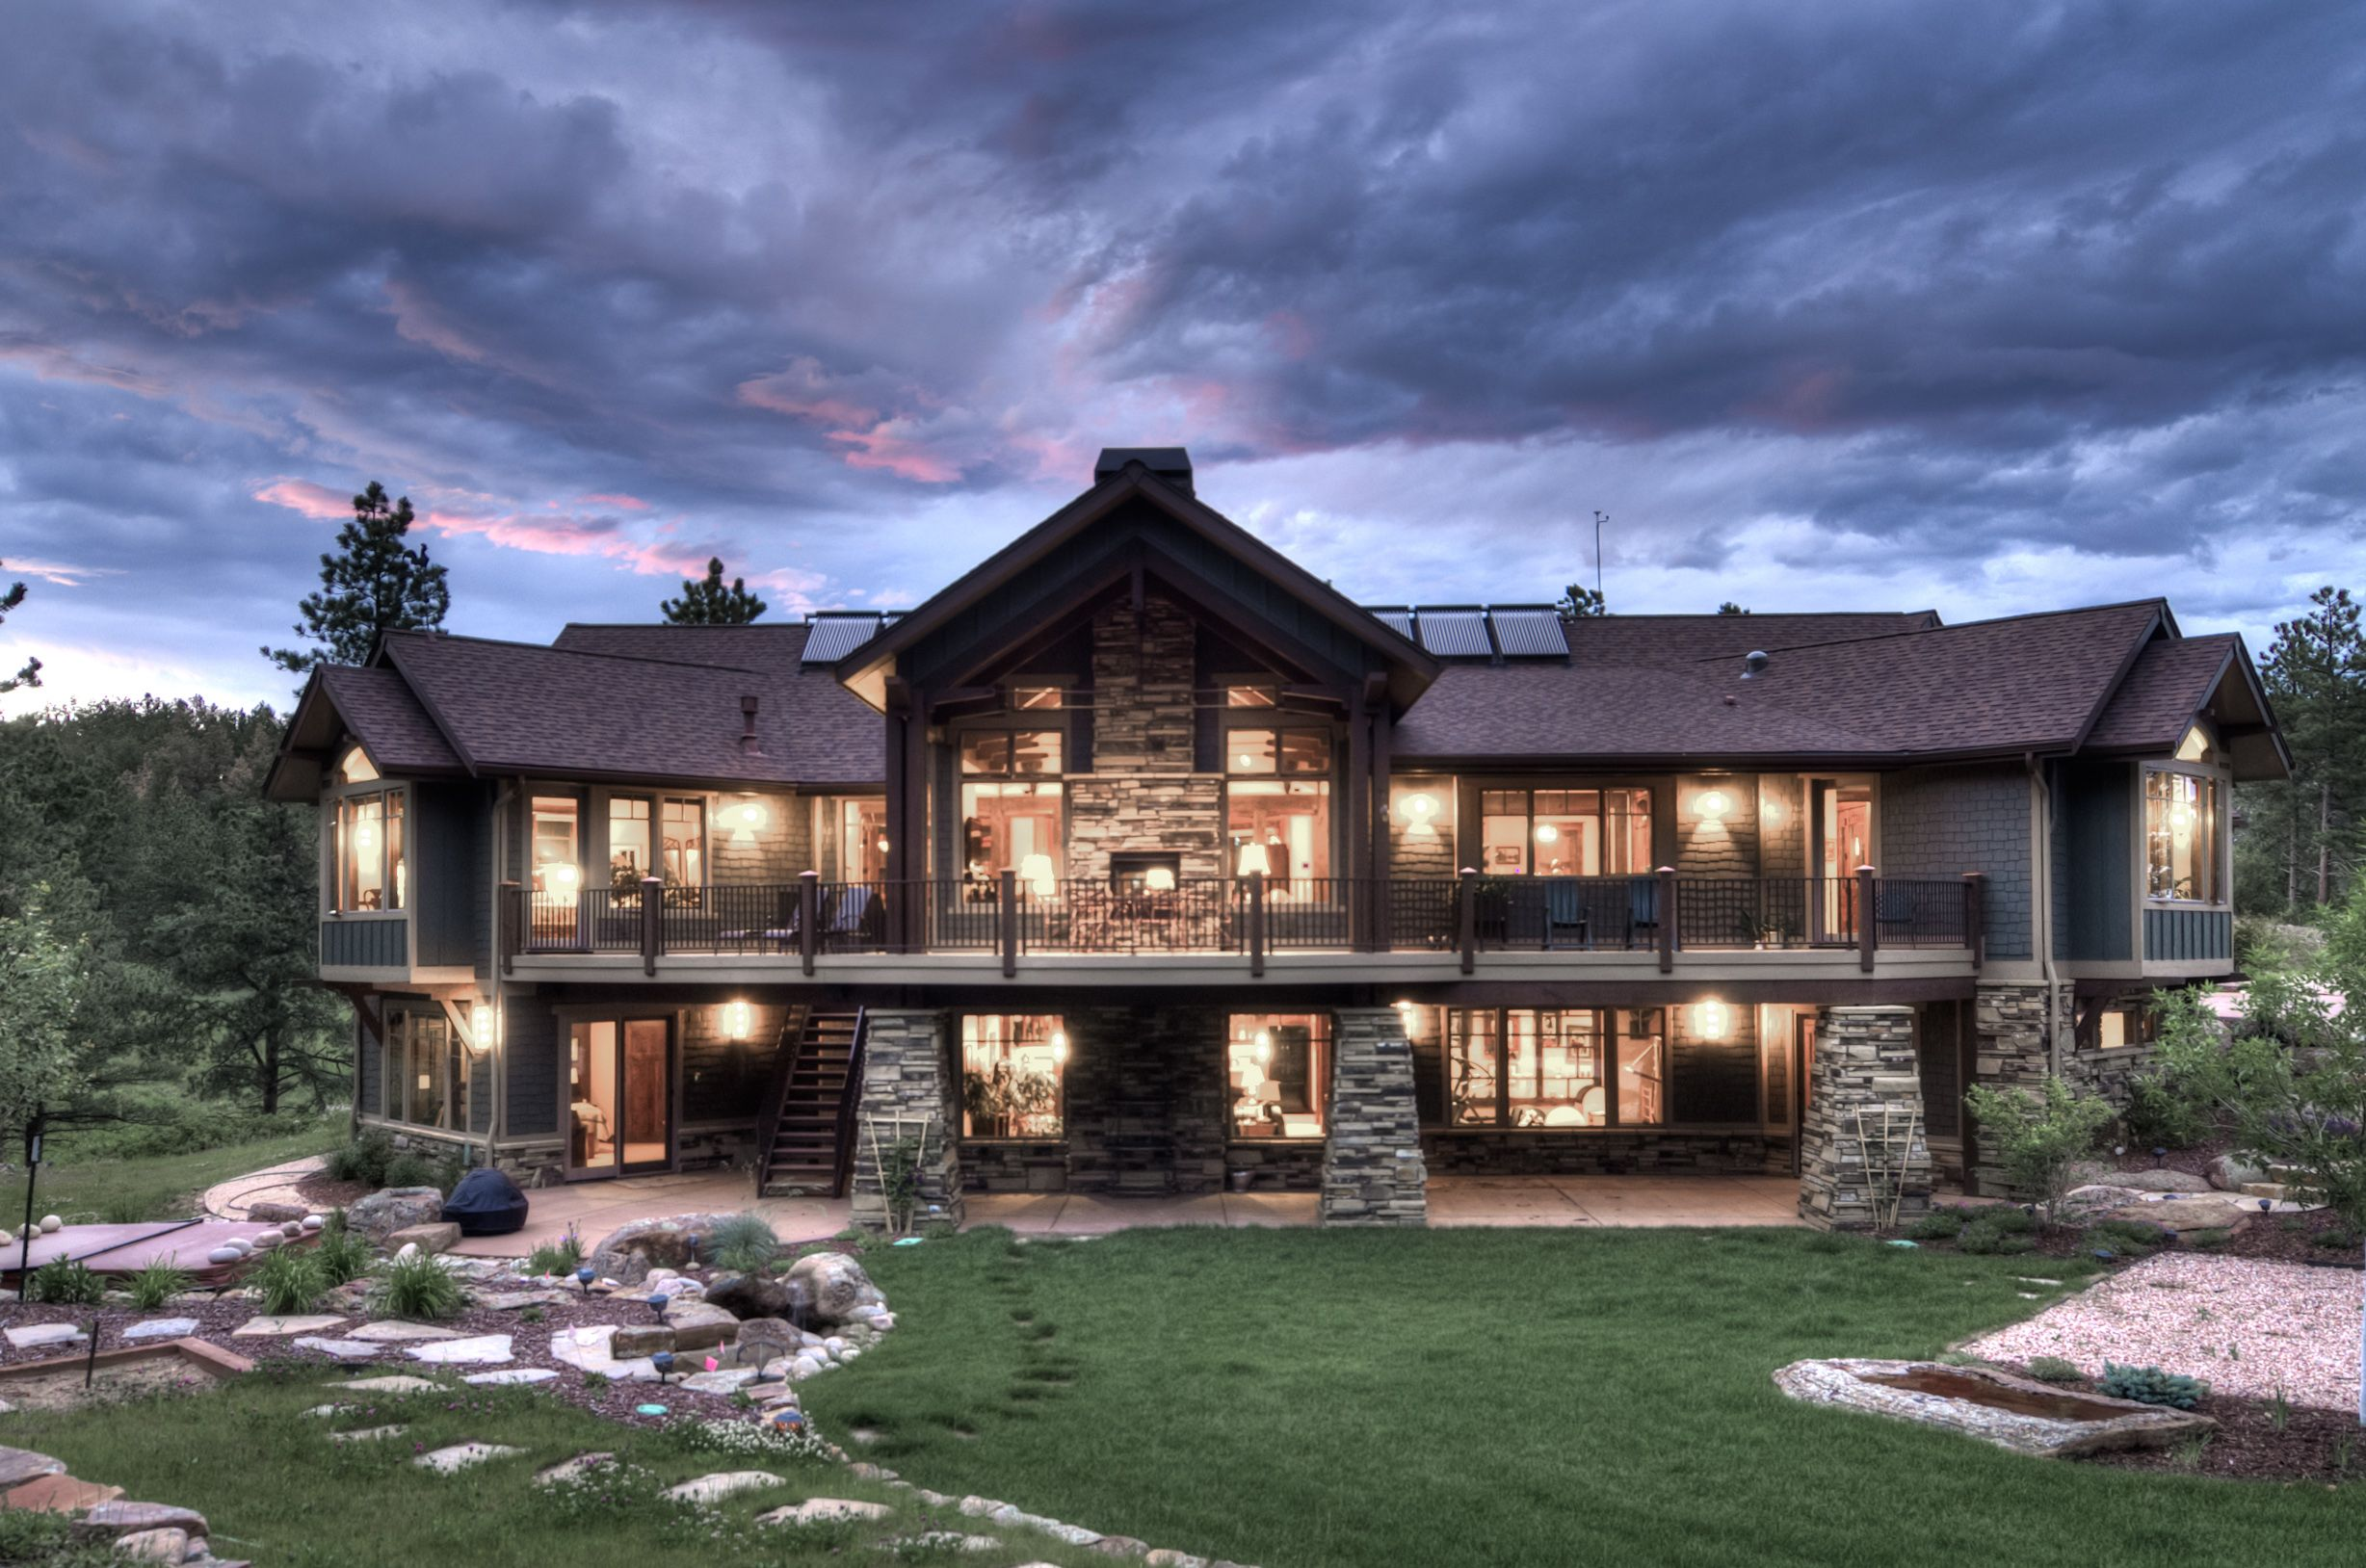 Amazing Mountain Craftsman House Plans #10: Mountain Craftsman Style House Plans | Breathtaking Exterior View Of The  Mountain-Craftsman Style Home